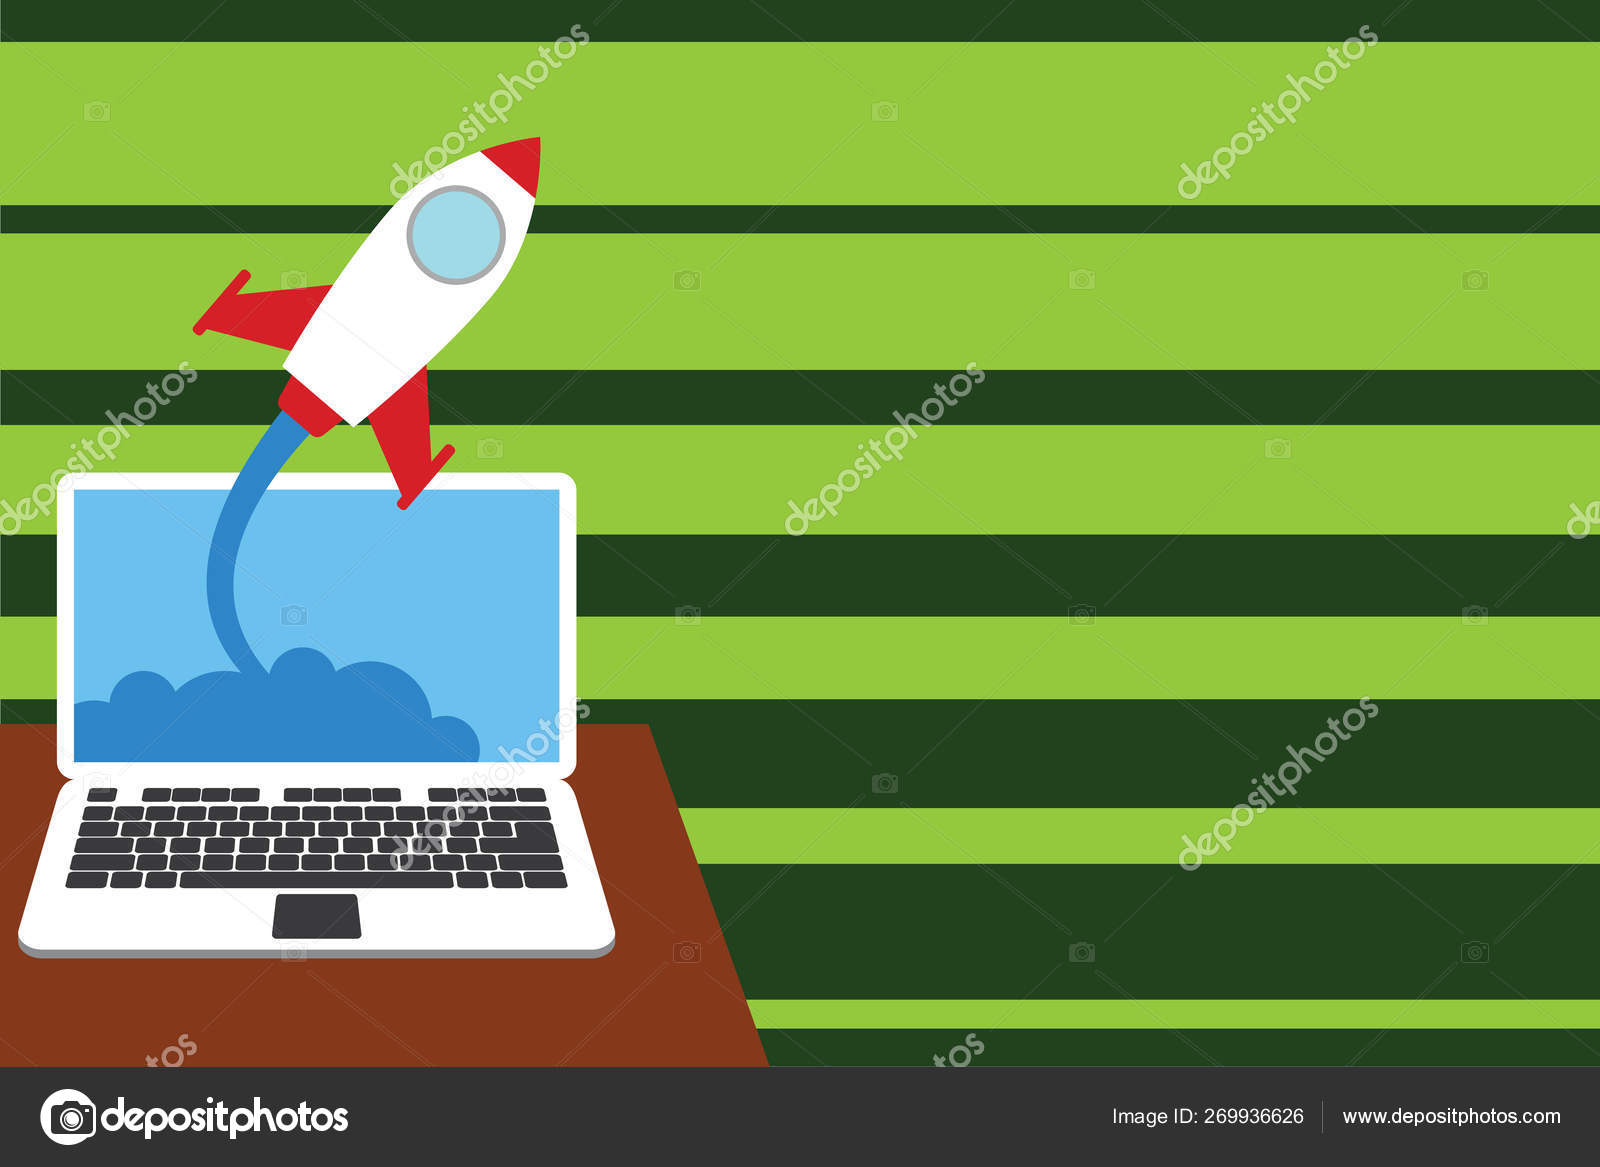 Rocket successful launching clouds out laptop background  Spacecraft